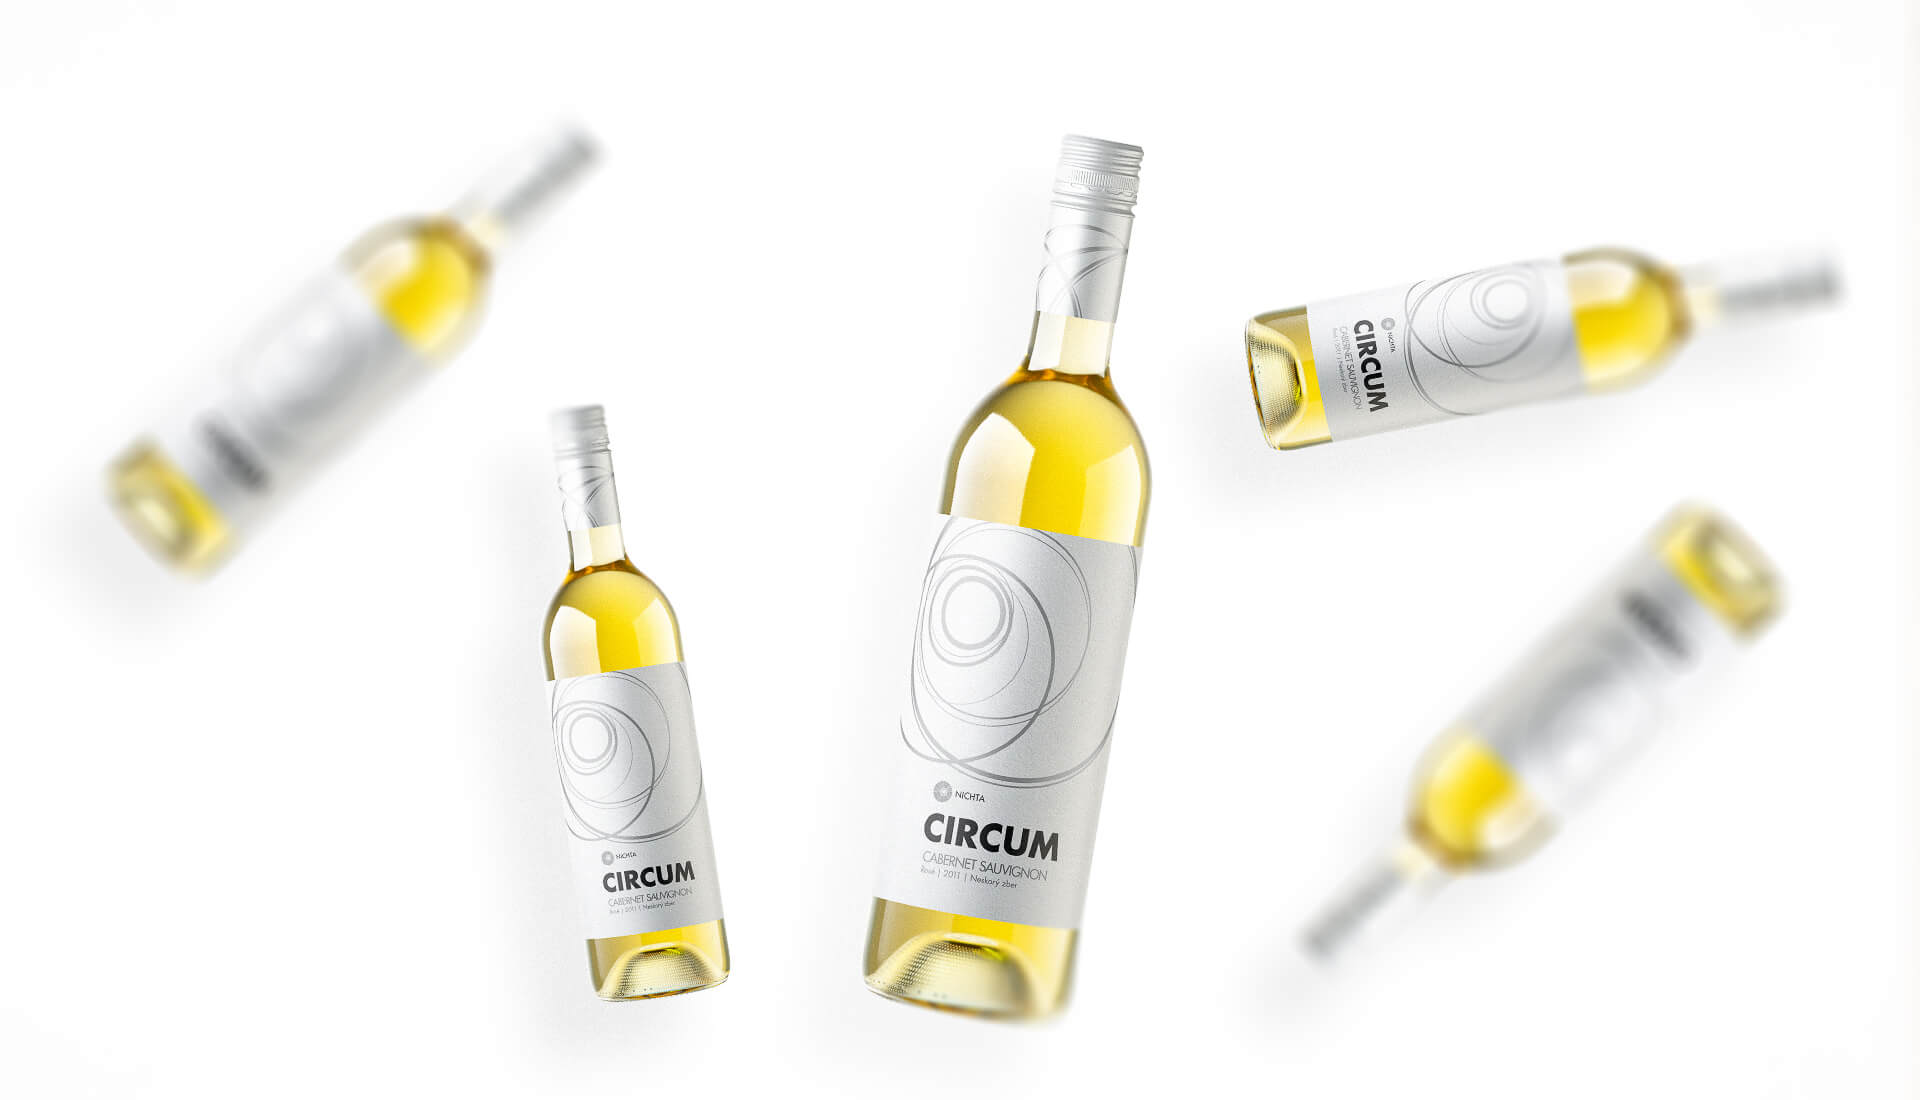 Wine label packaging design CIRCUM NICHTA winery white wine